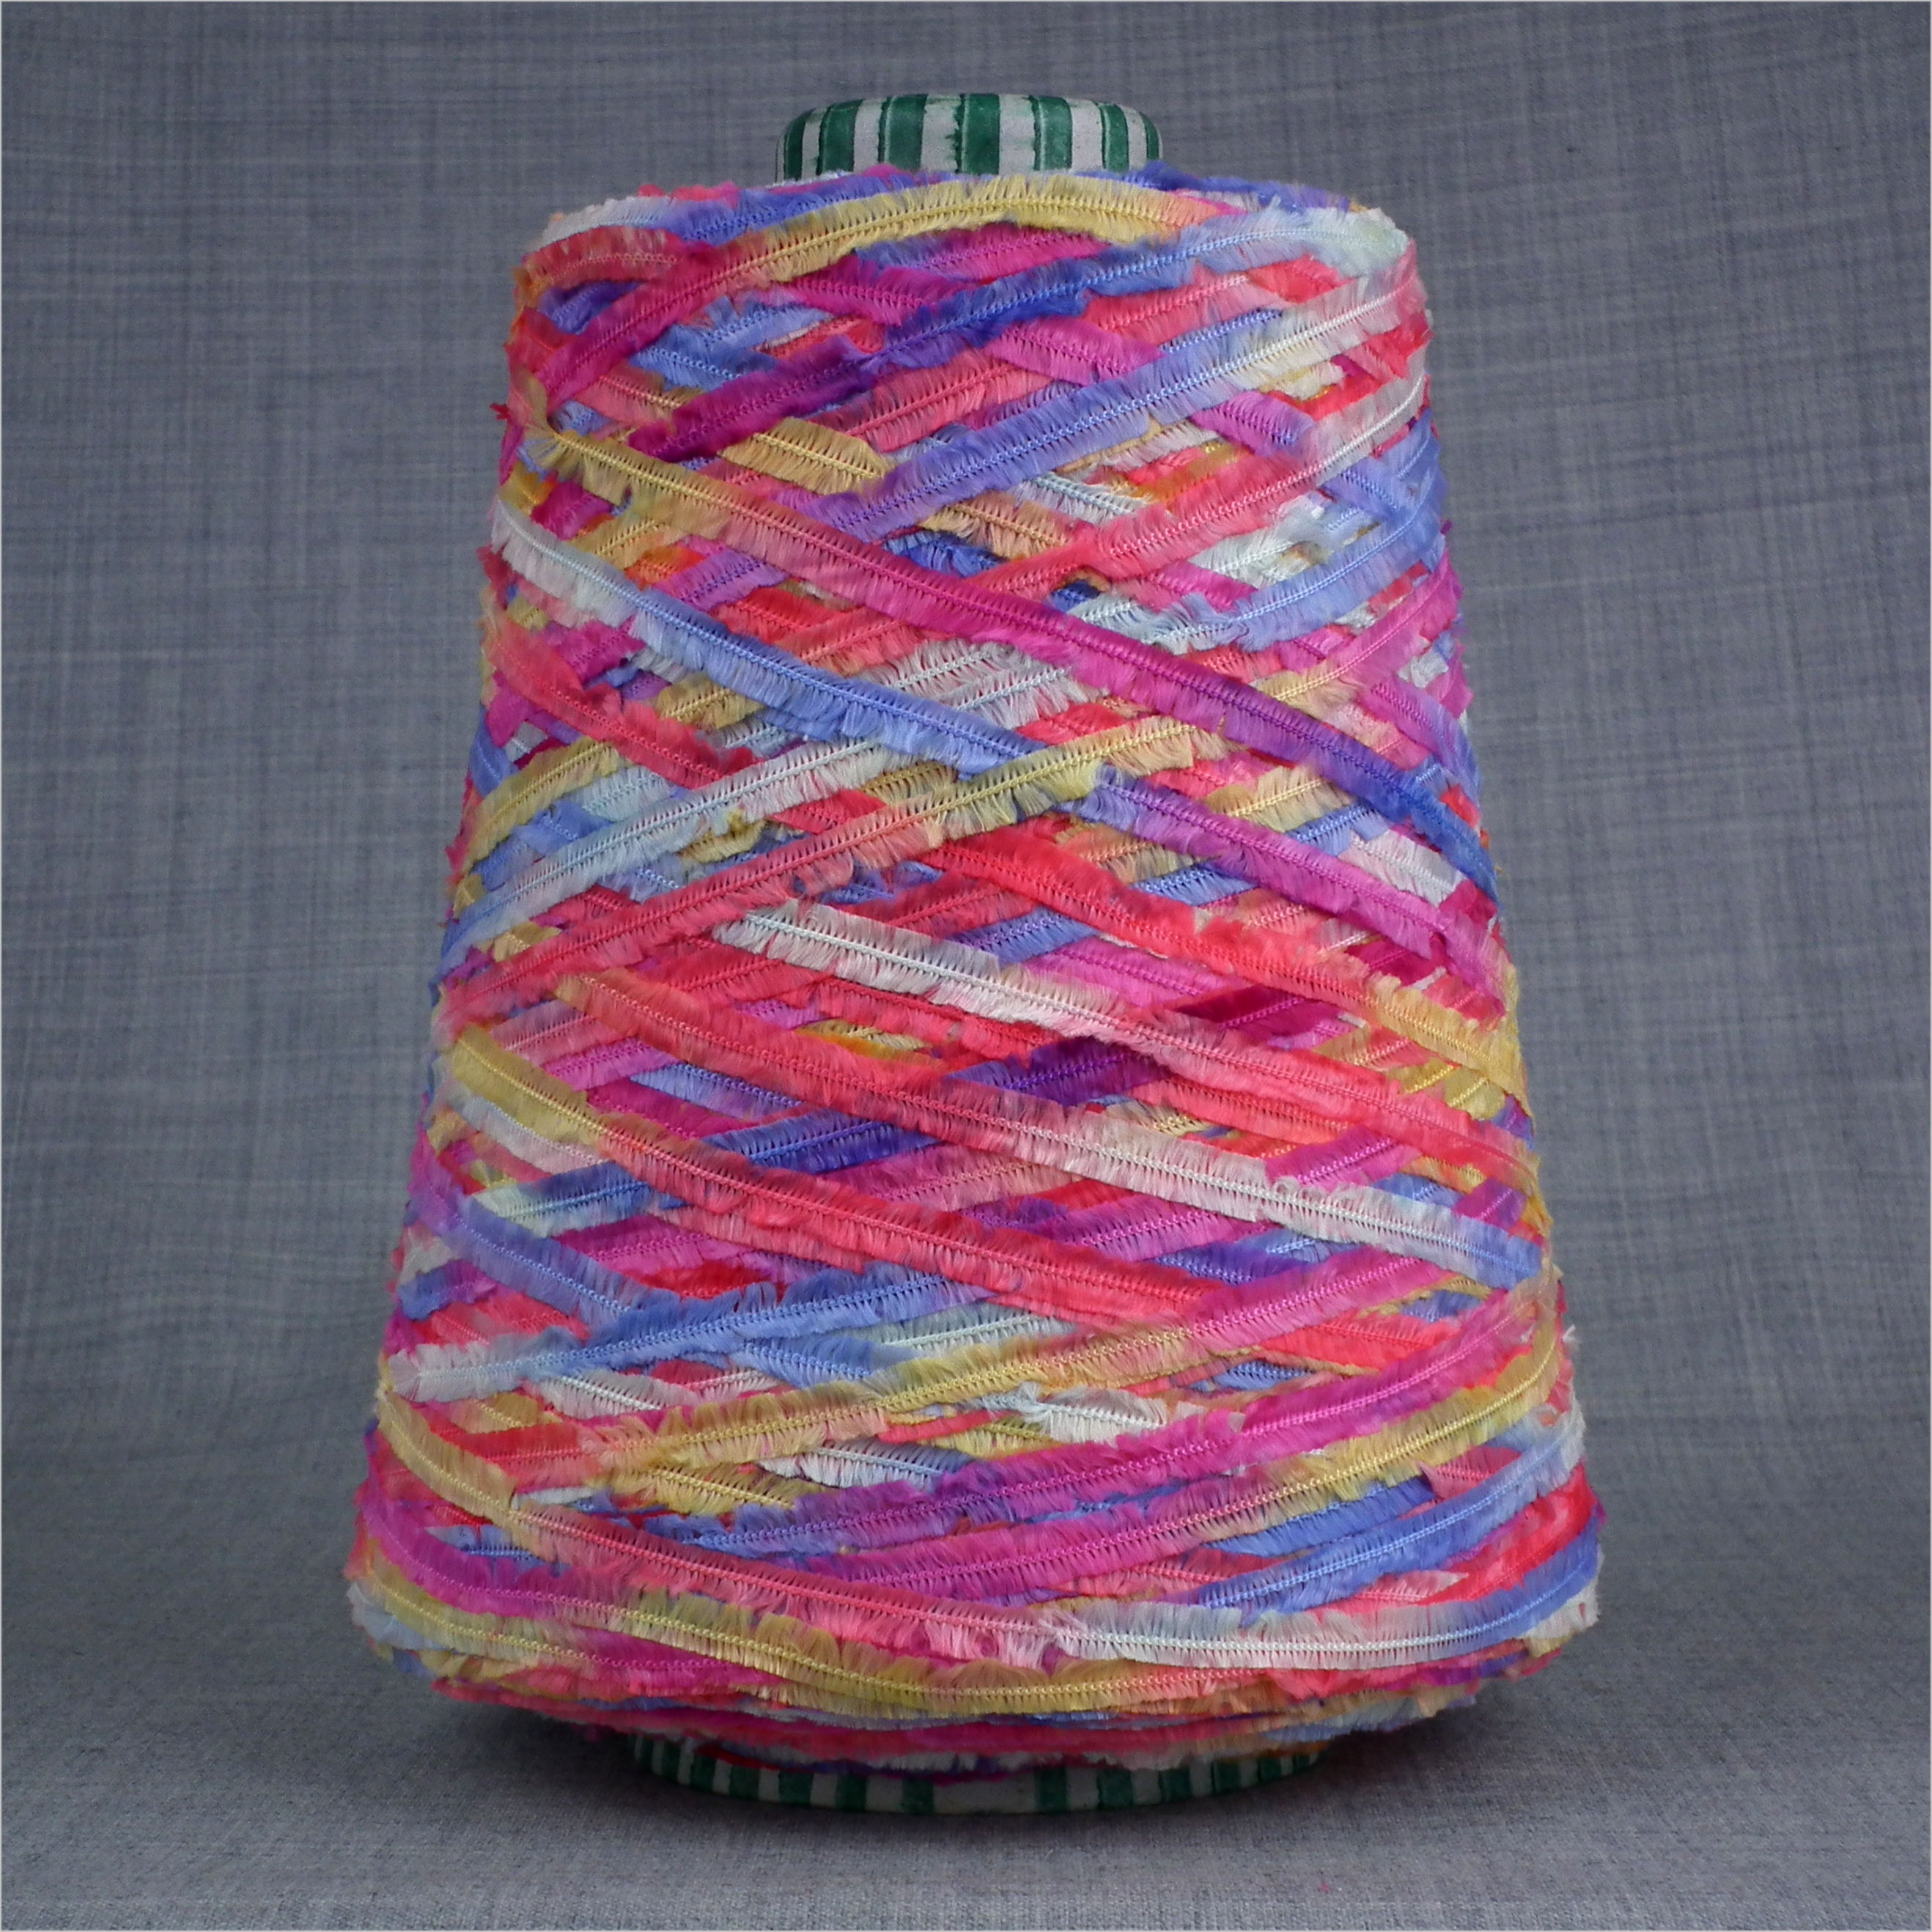 Space dyed feather yarn on cone pink blue lilac yellow